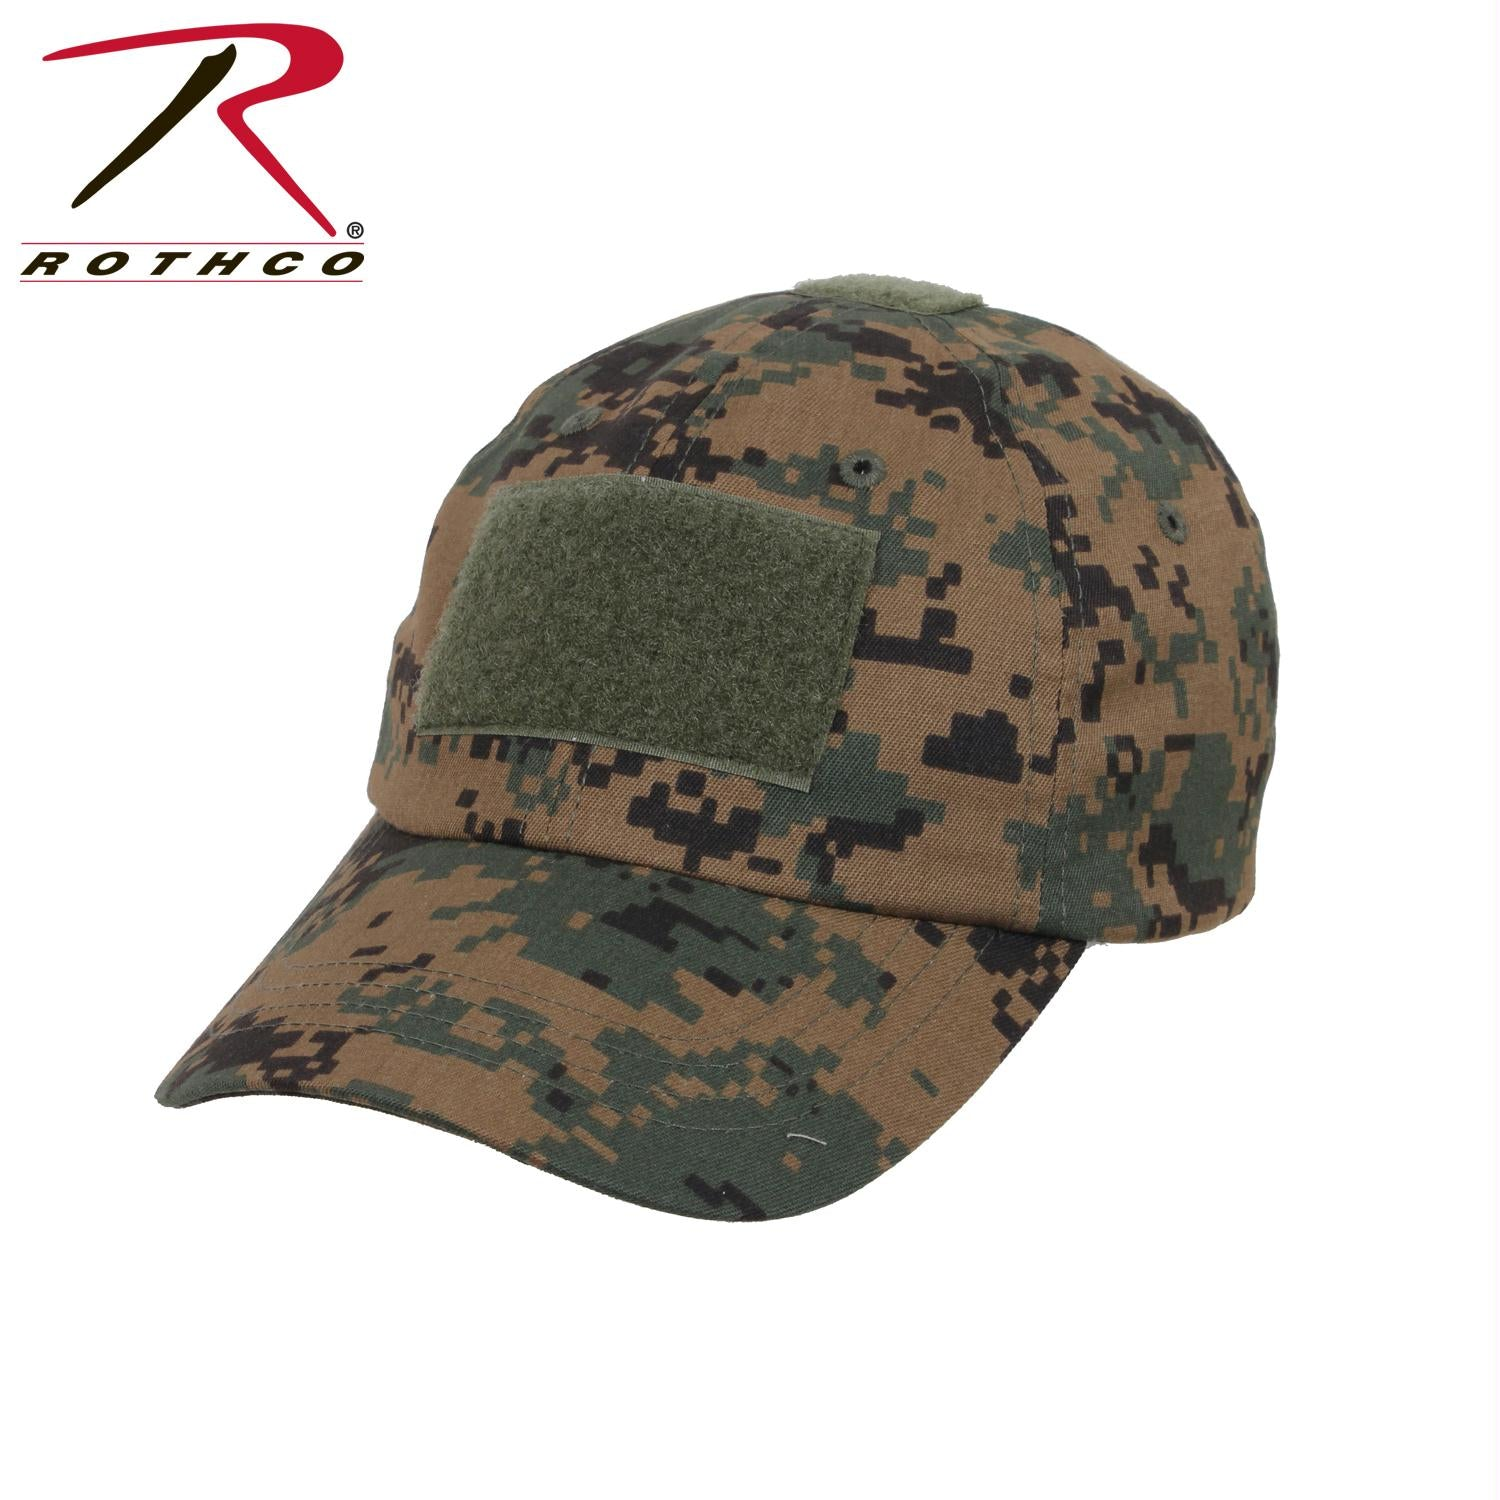 Rothco Tactical Operator Cap - Woodland Digital Camo